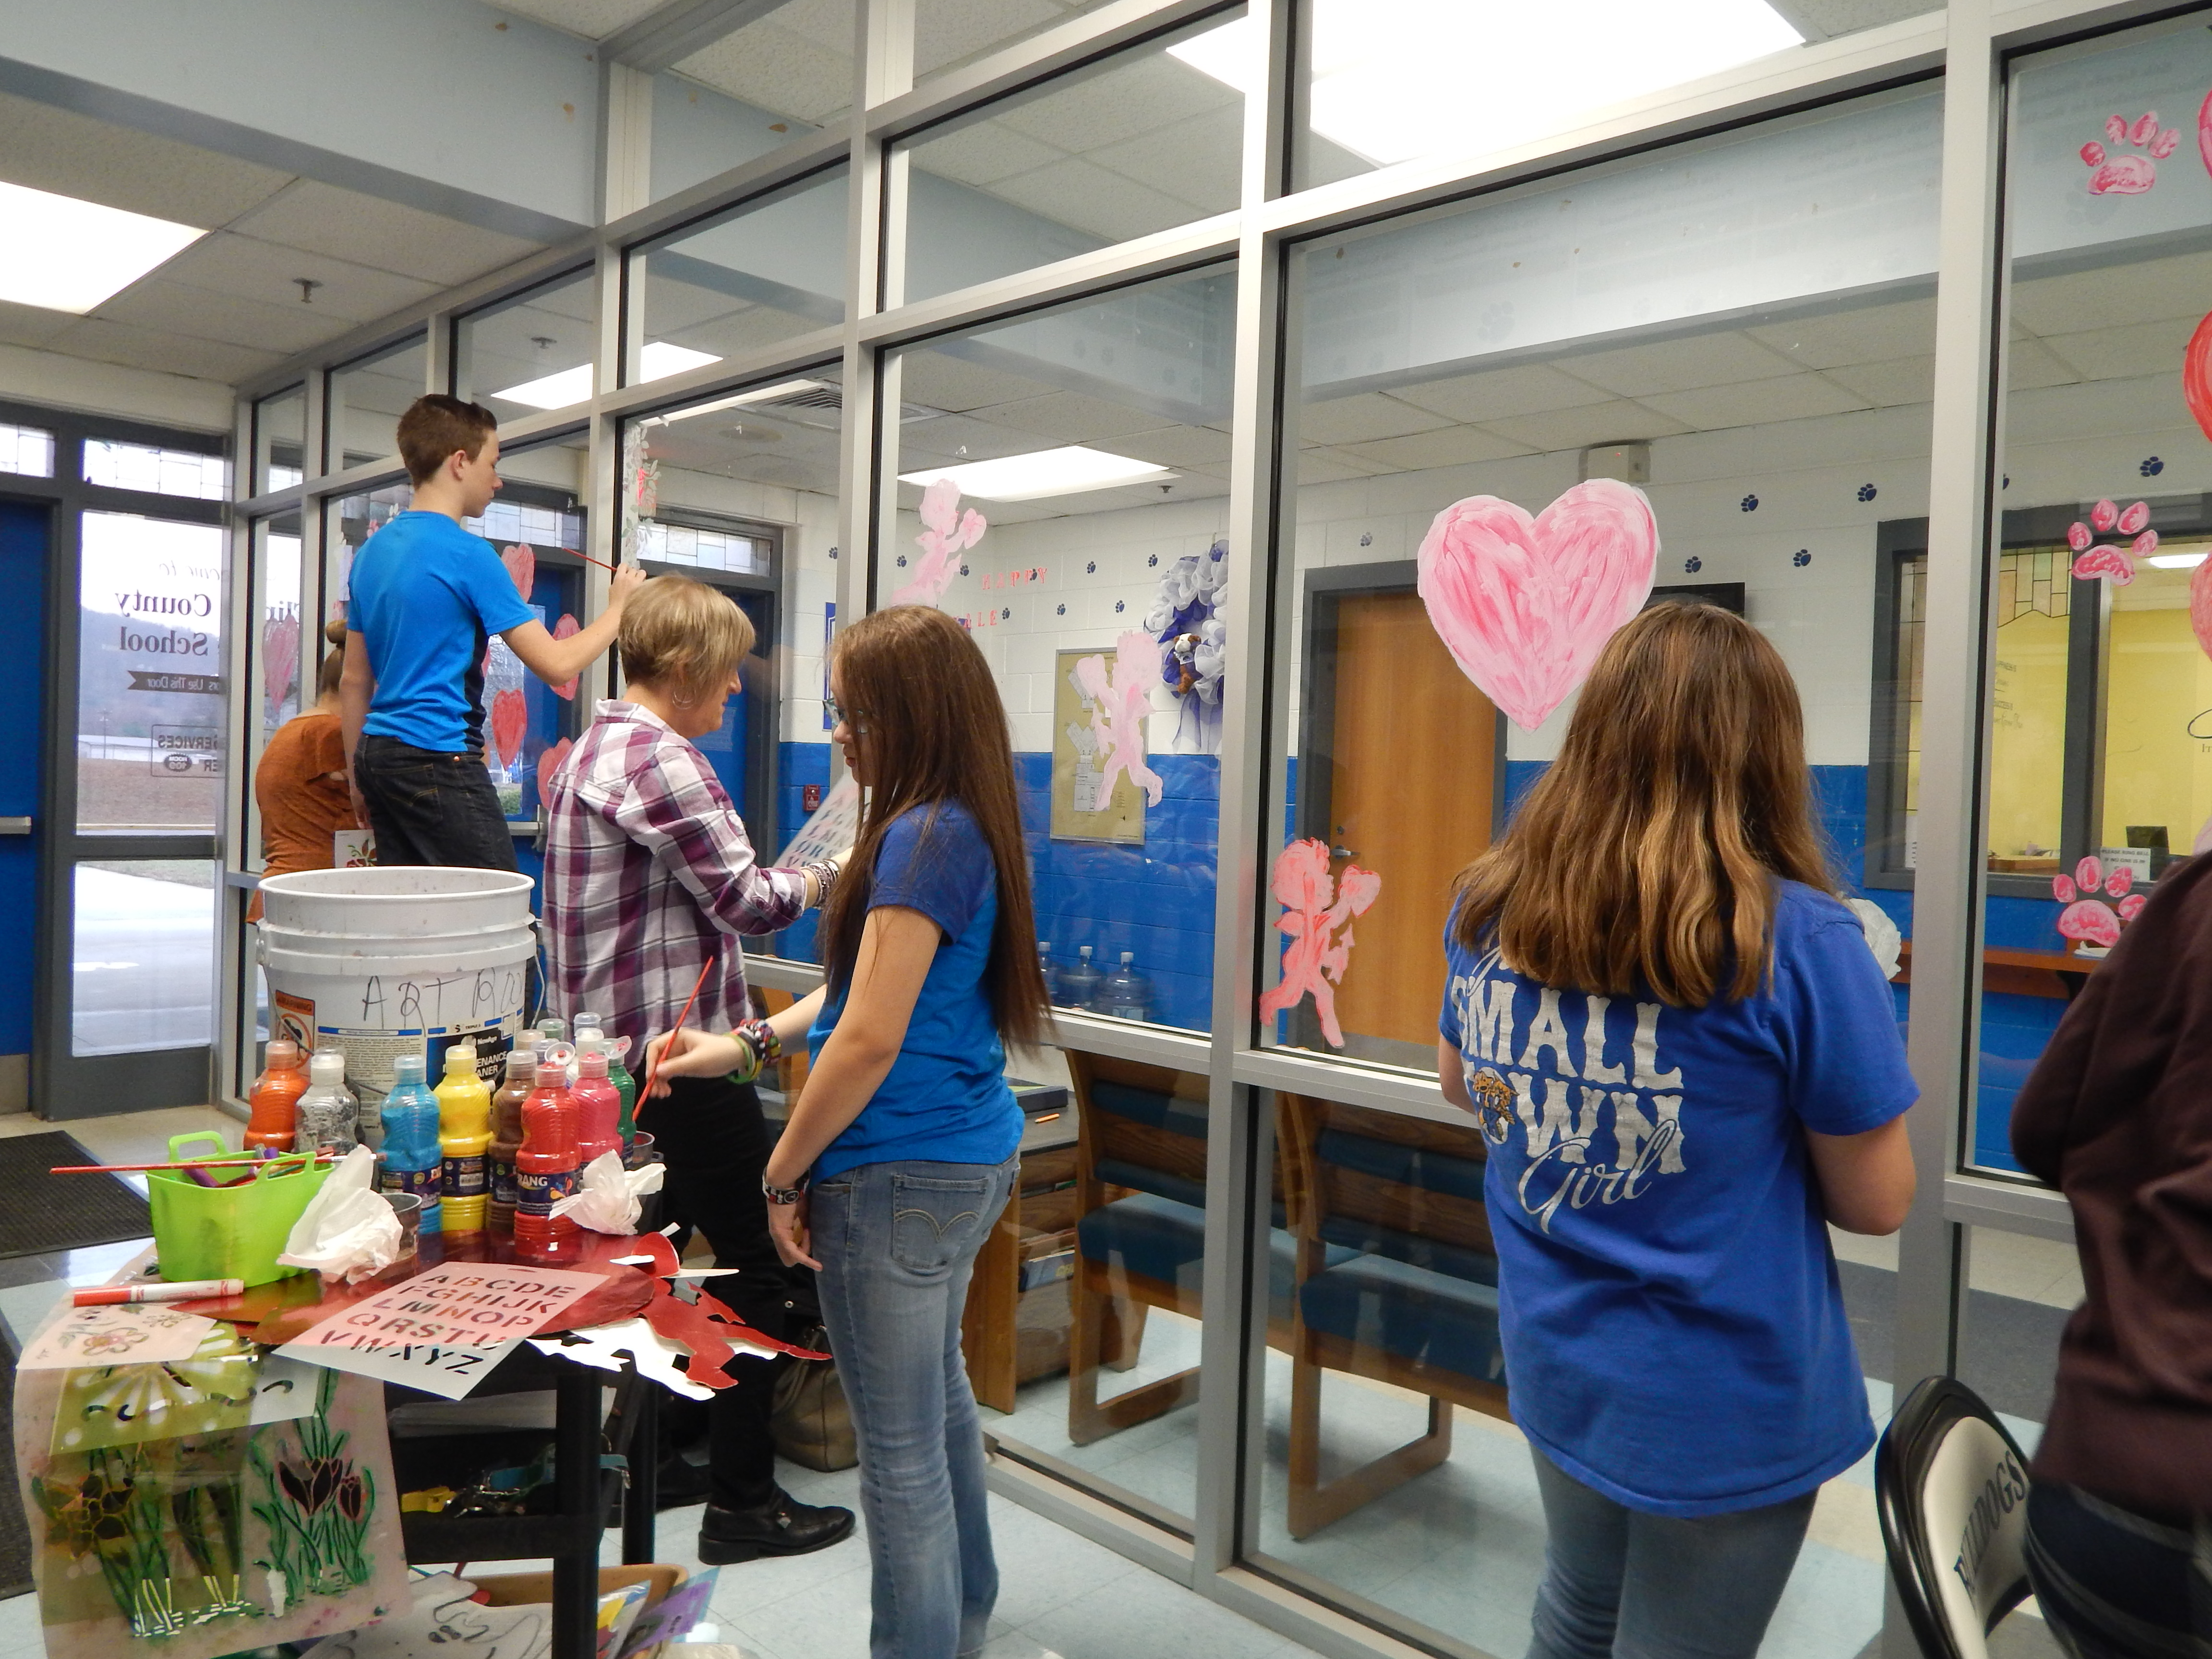 The 8th grade students in Mrs. Pam Miniard's art classes at CCMS put their painting skills to work and decorated the lobby for Valentine's Day.